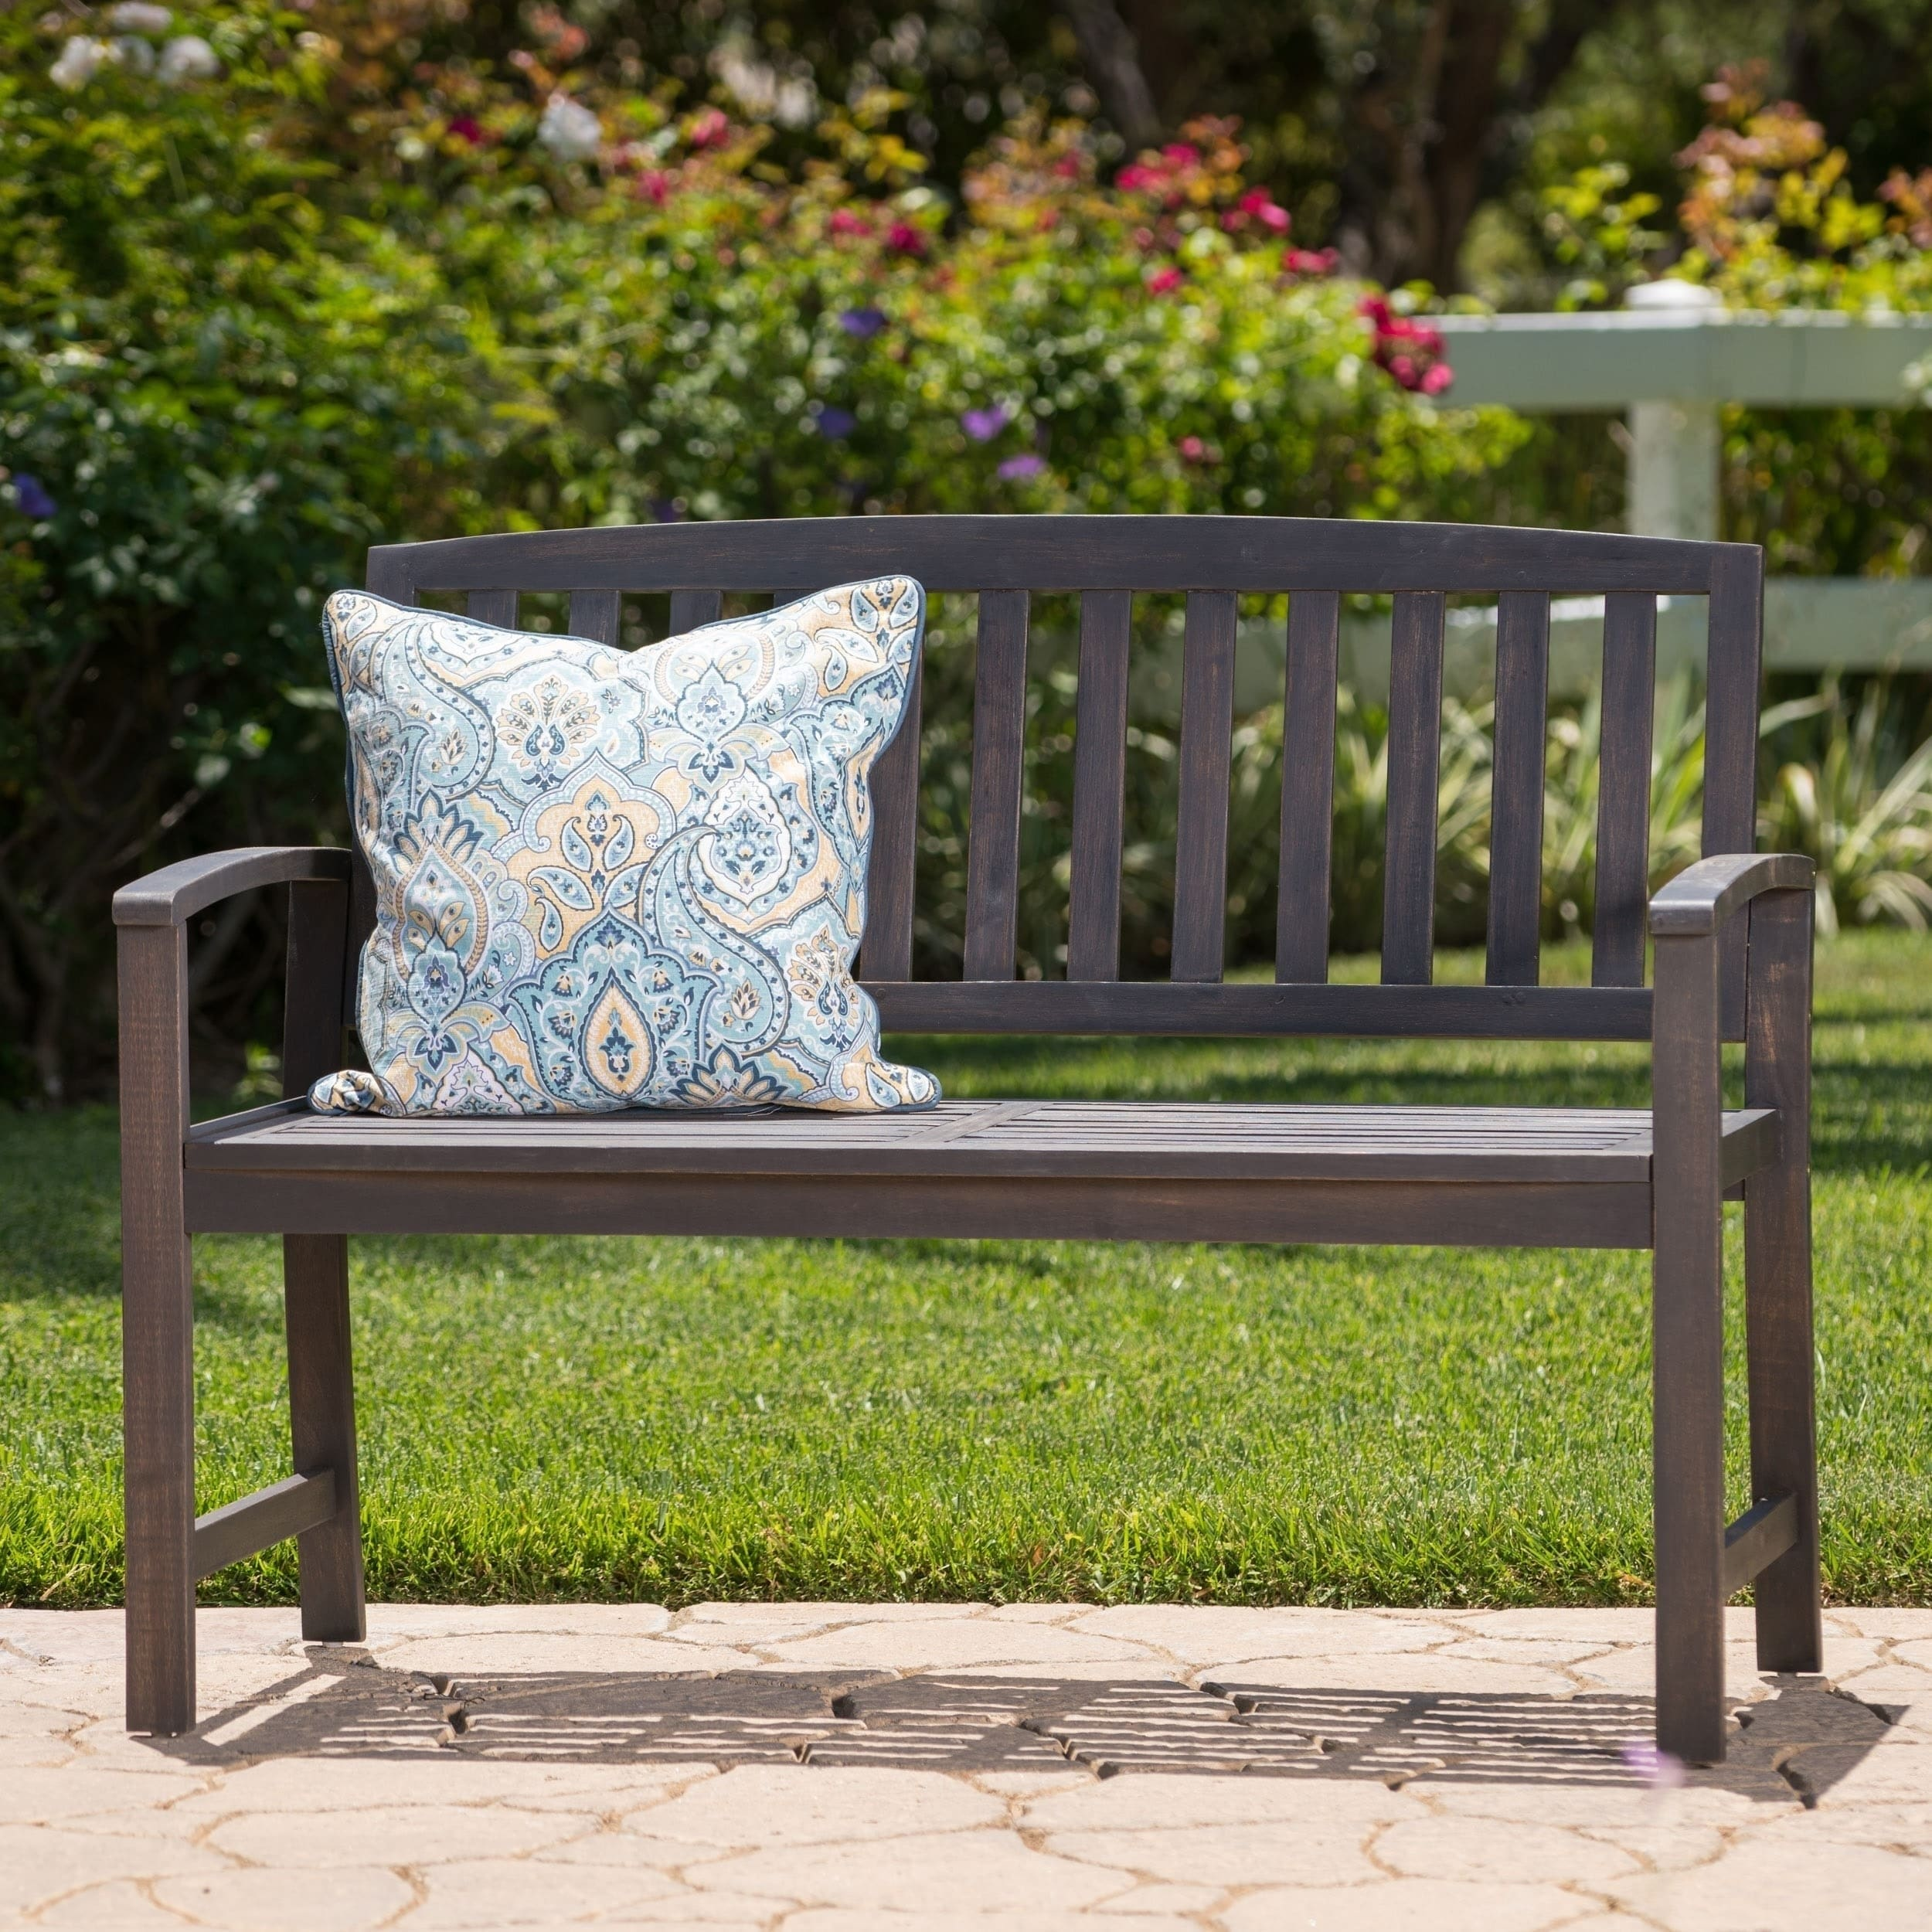 Pink Patio Furniture   Find Great Outdoor Seating & Dining Deals ...